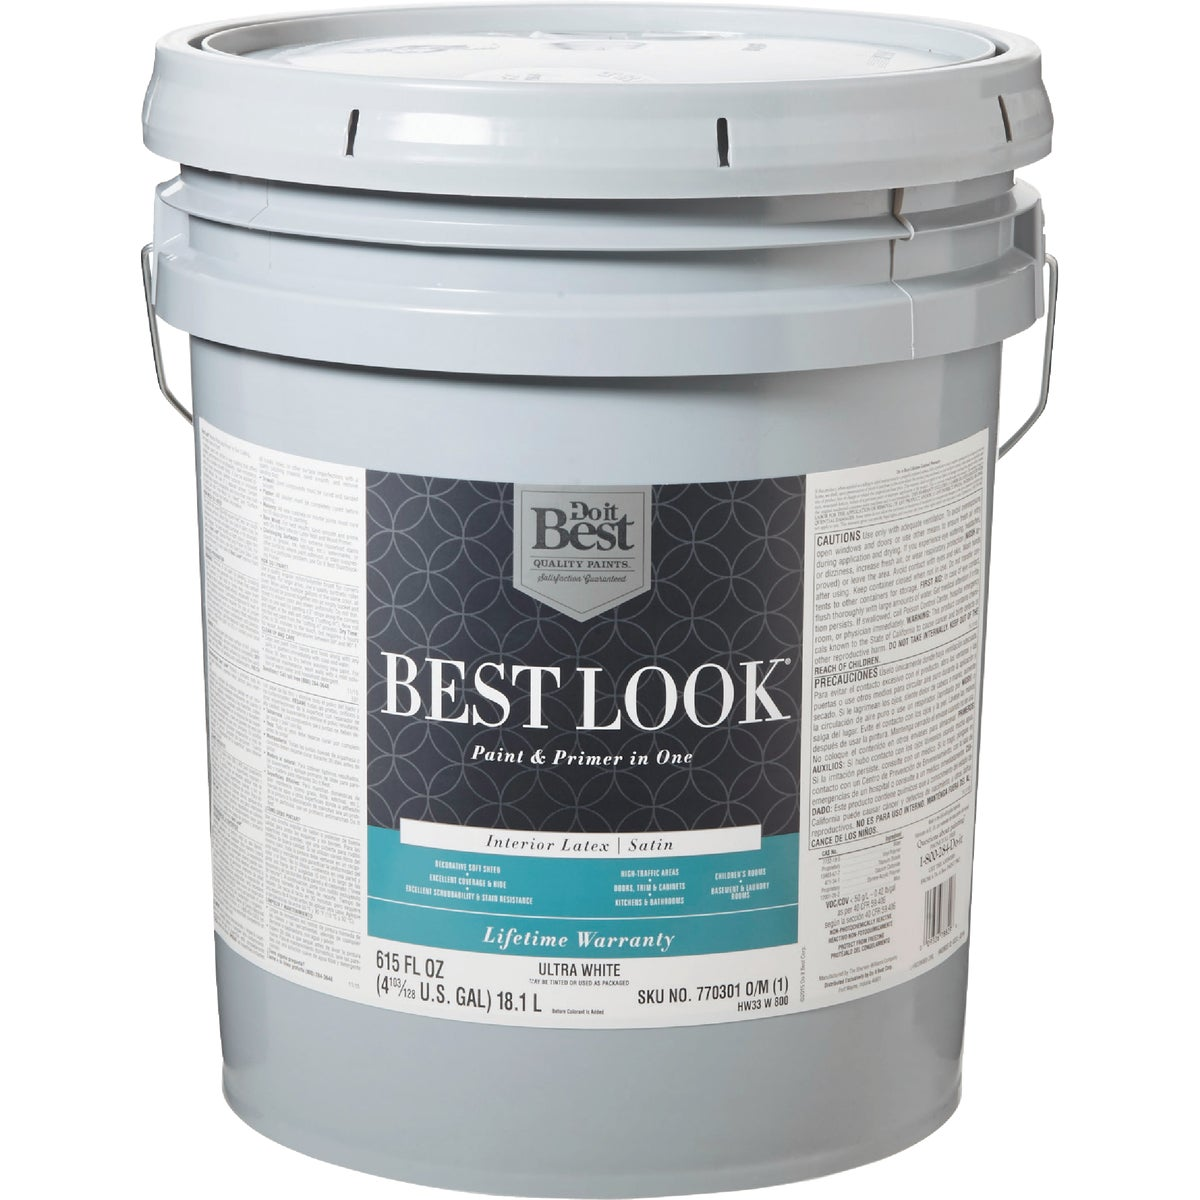 INT SAT ULTRA WHT PAINT - HW33W0800-20 by Do it Best